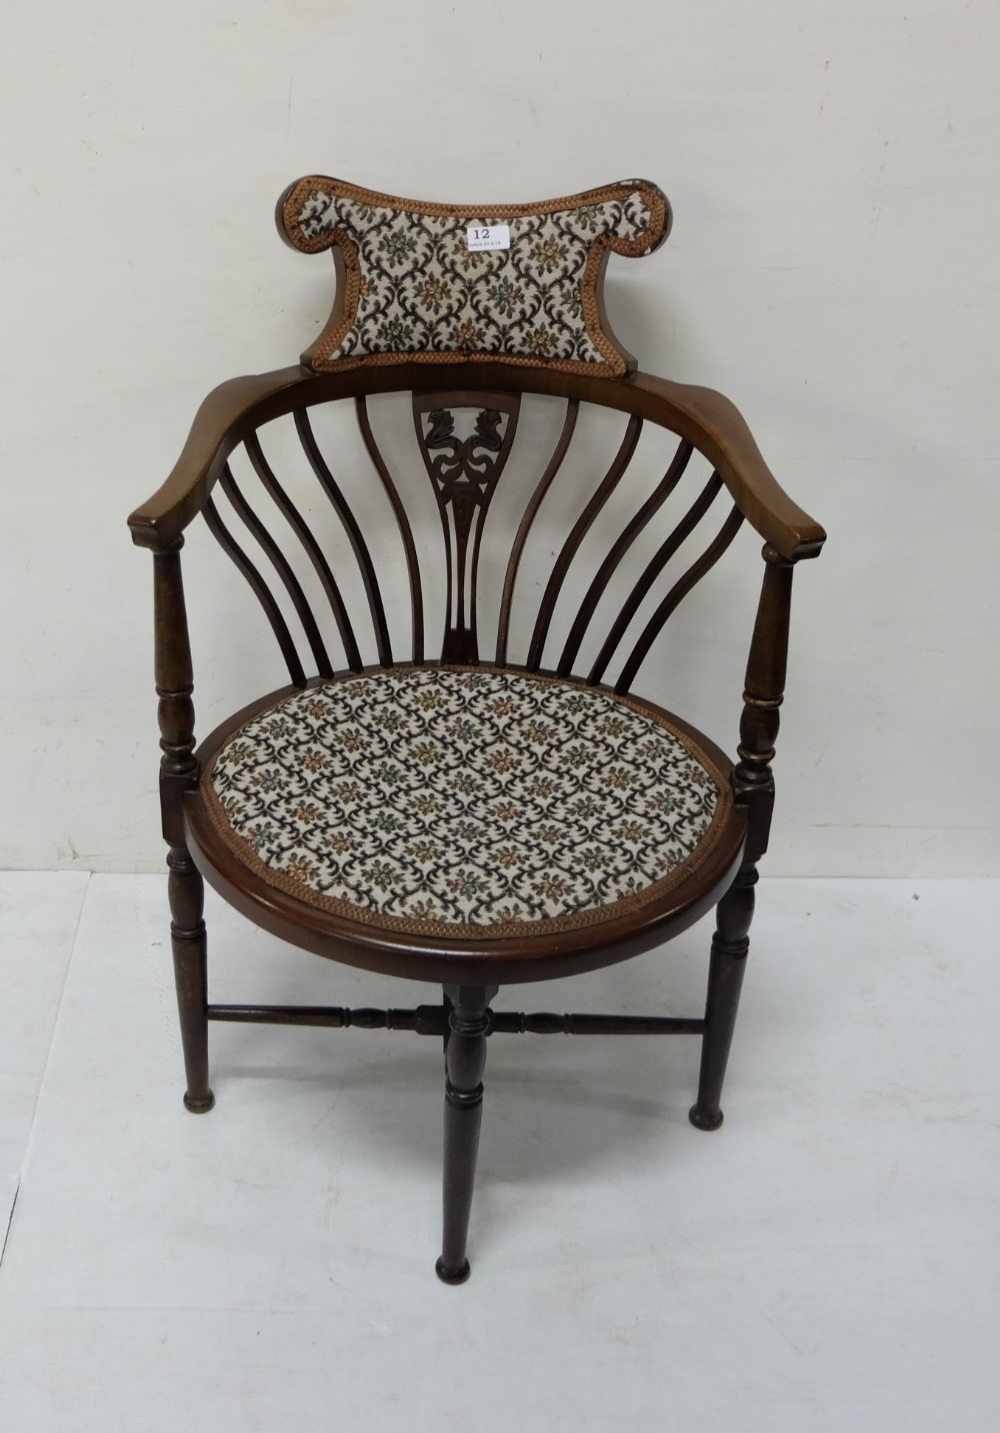 Lot 12 - Mahogany Bow-shaped Armchair, with padded back and seat, spindle shaped legs